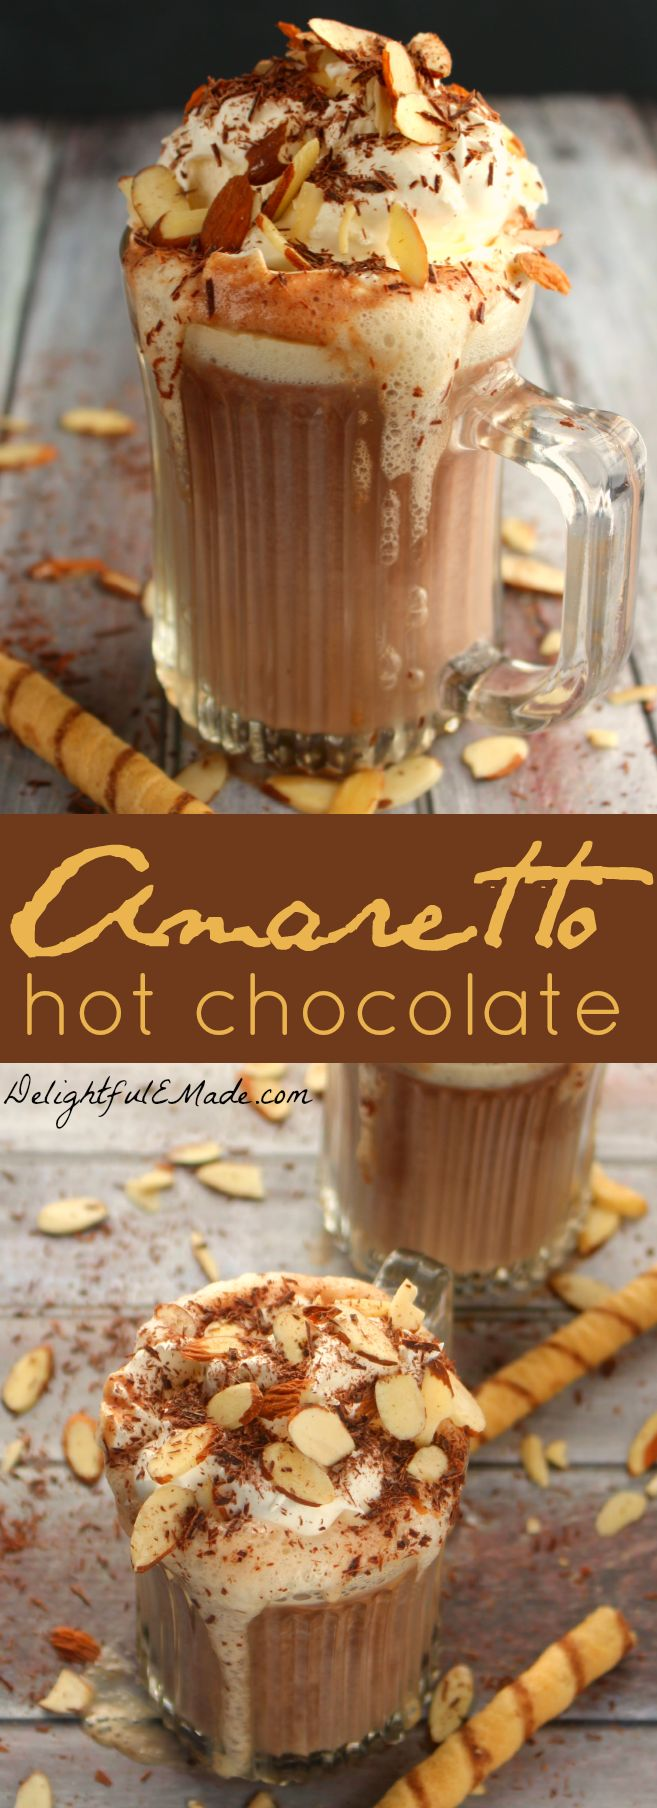 Flavored with Amaretto Liquor for a subtle almond flavor and rich chocolate, this Amaretto Hot Chocolate is the most decadently delicious drink perfect on a cold night!: